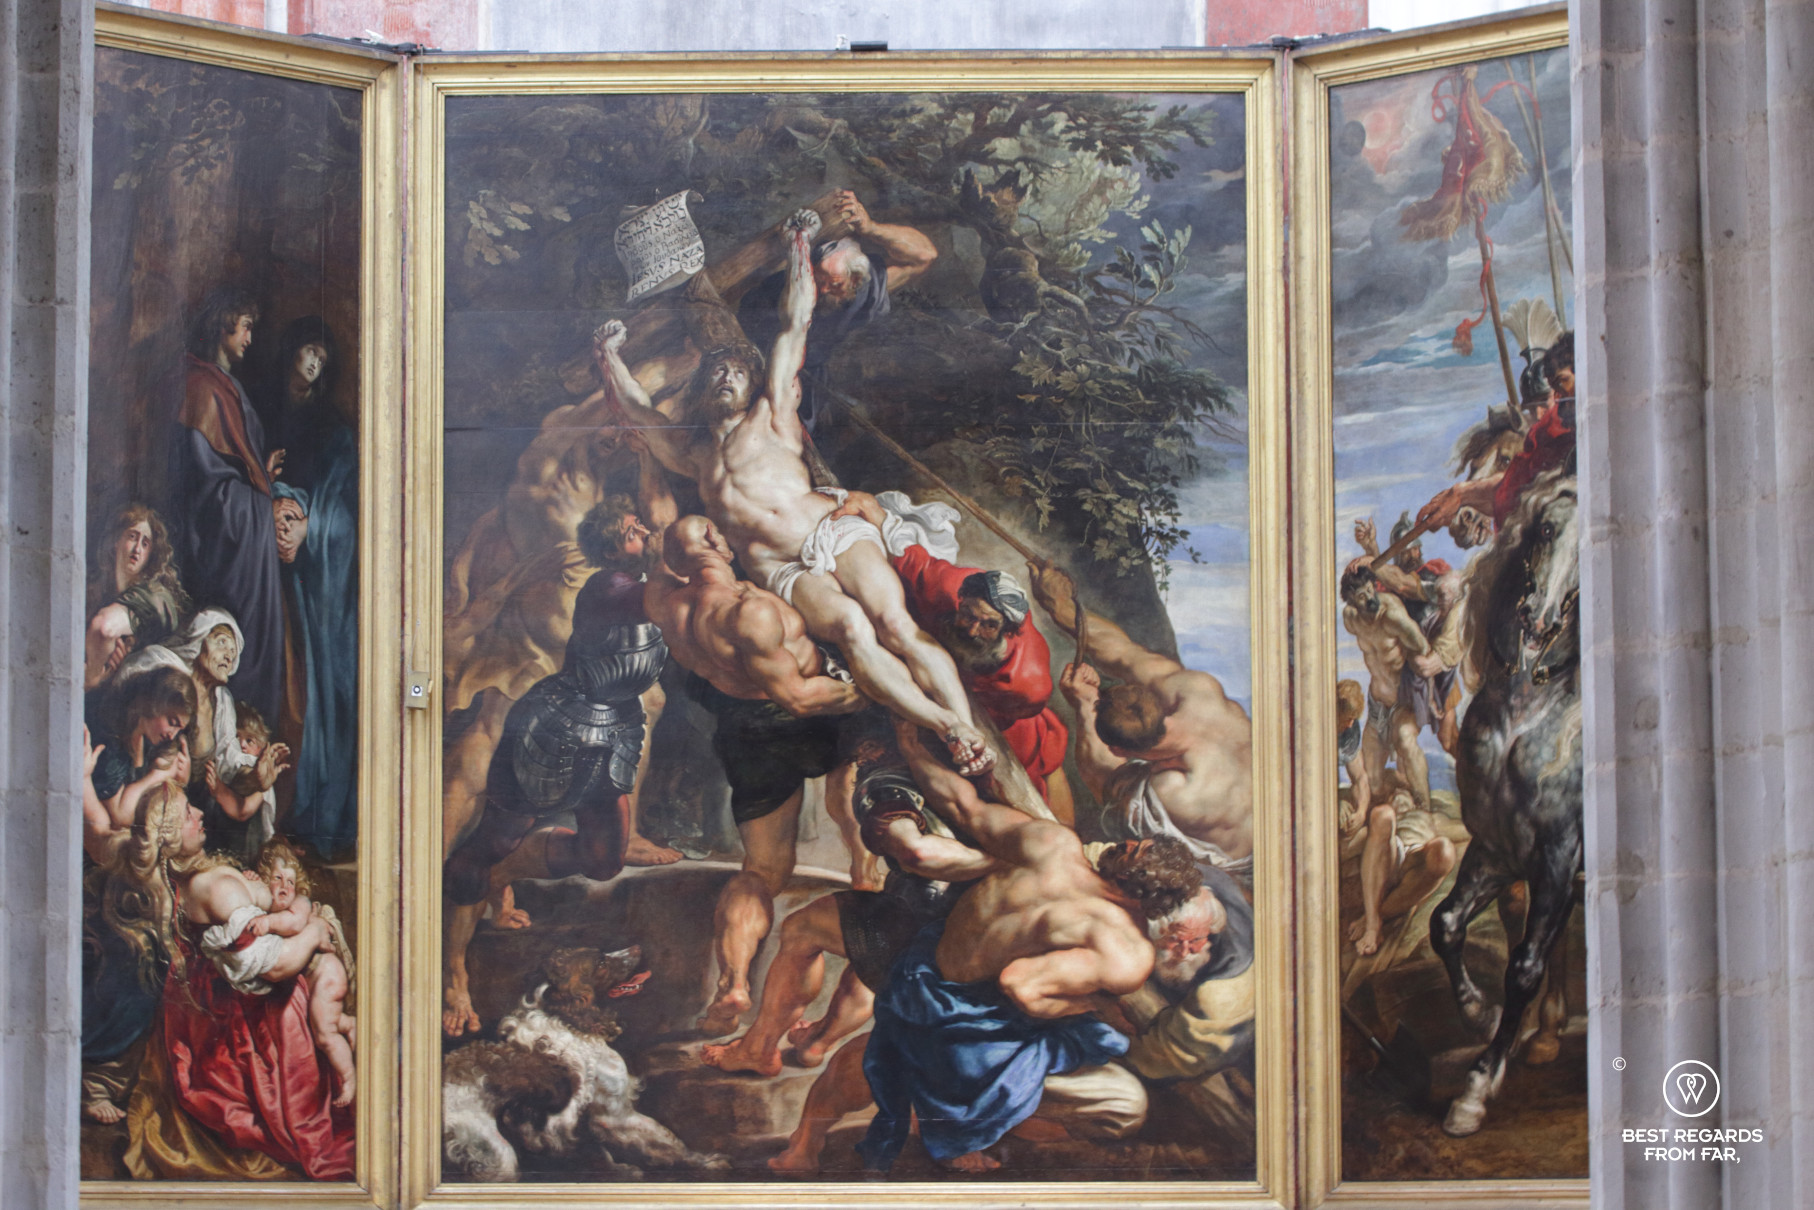 The Raising of the Cross by Rubens, Cathedral of our Lady, Antwerp, Belgium